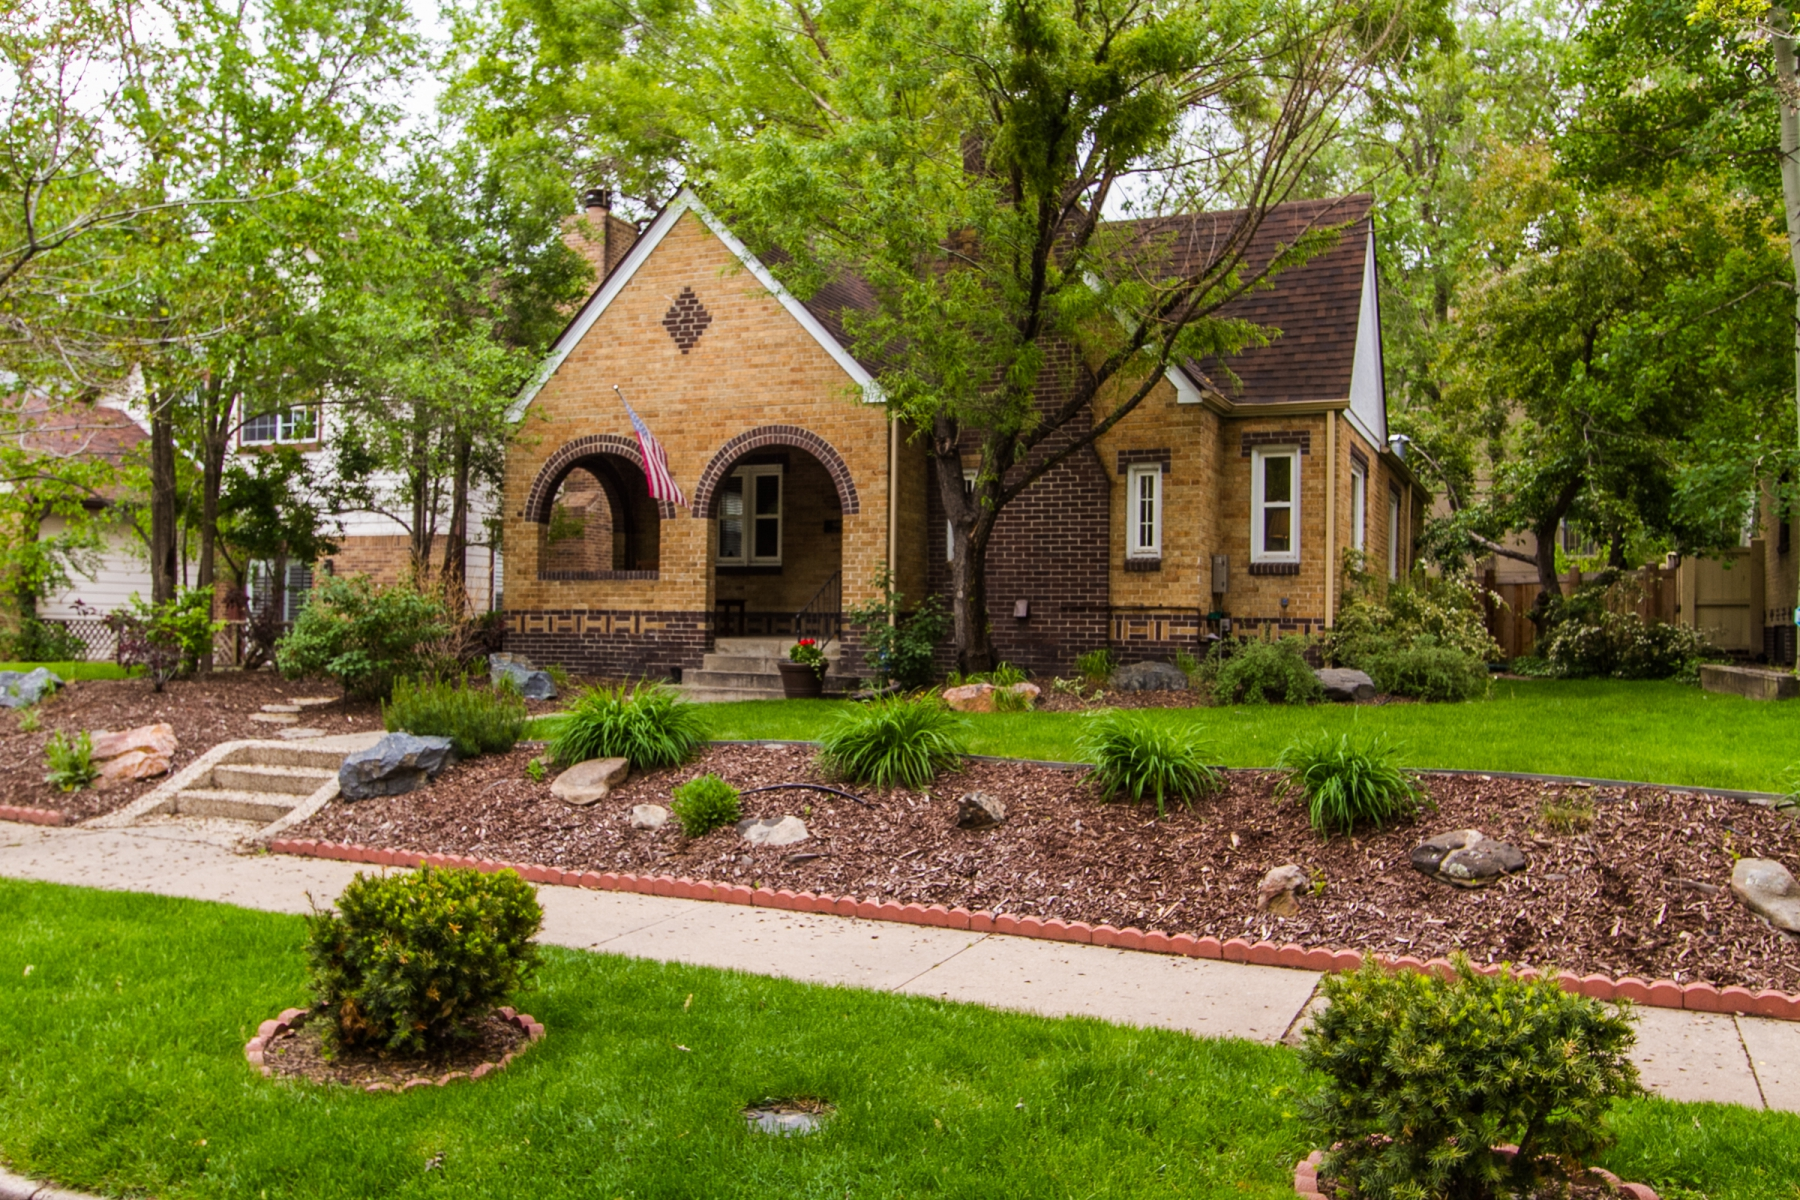 Property For Sale at Storybook tudor in the heart of East Wash Park!